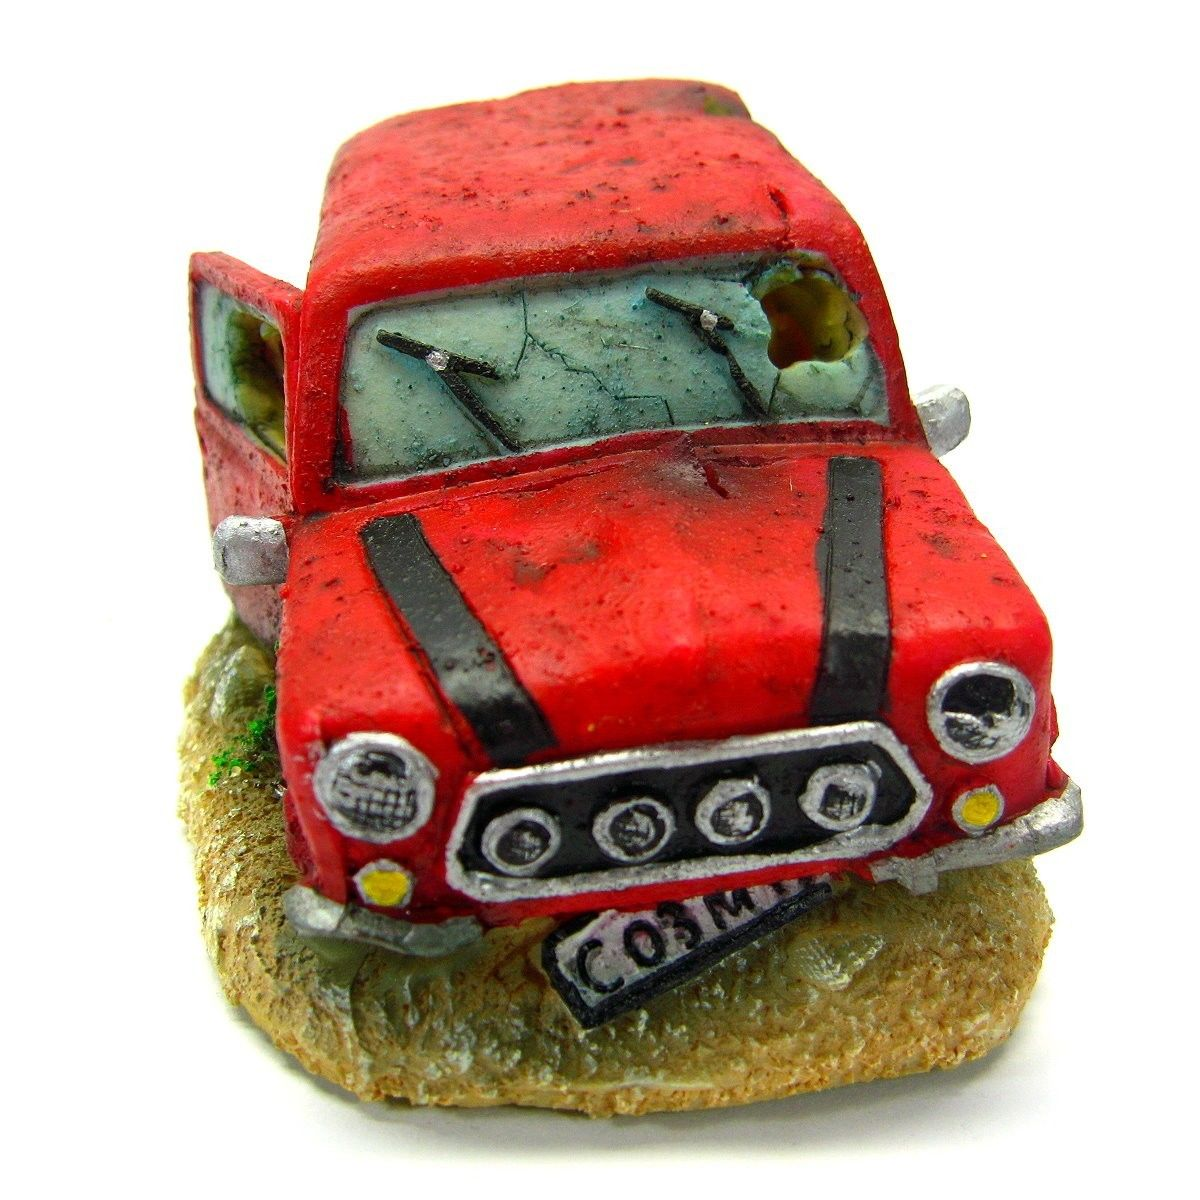 "Car Bubbles 5.7x3.4x2.8"" Aquarium Ornament Decoration - fish tank air stone"